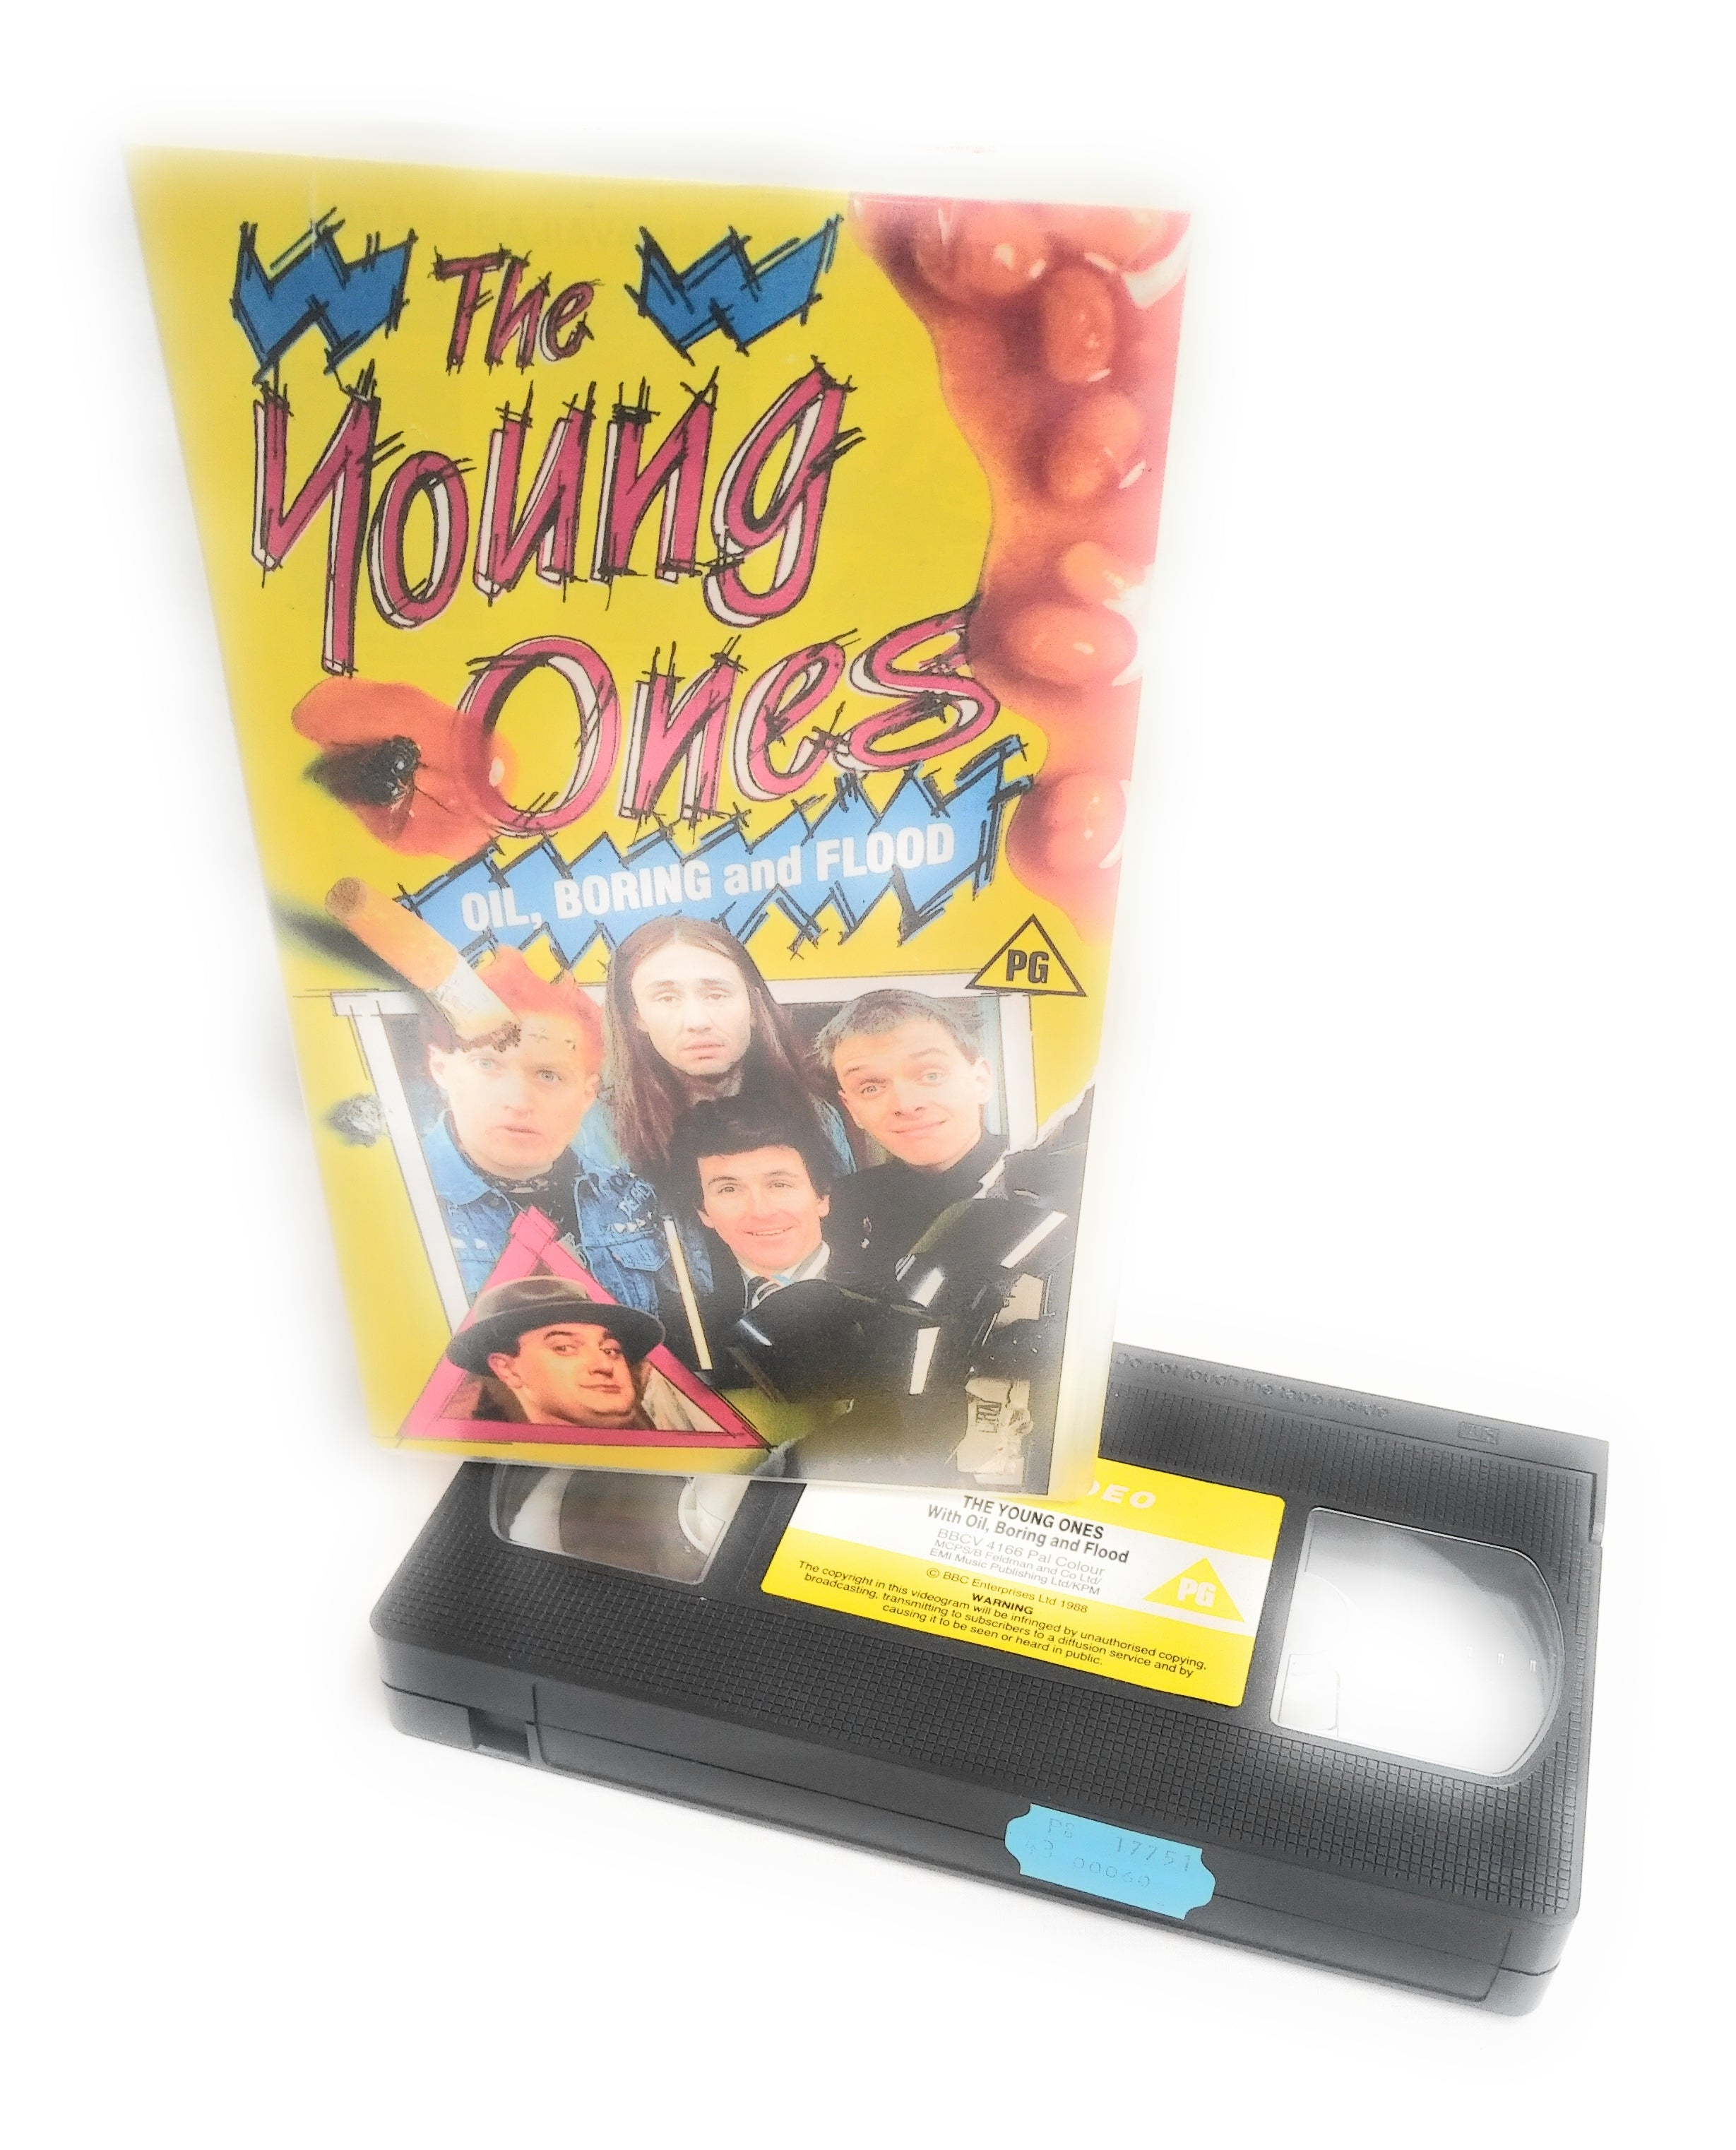 The Young Ones VHS Oil Boring And Flood Rare